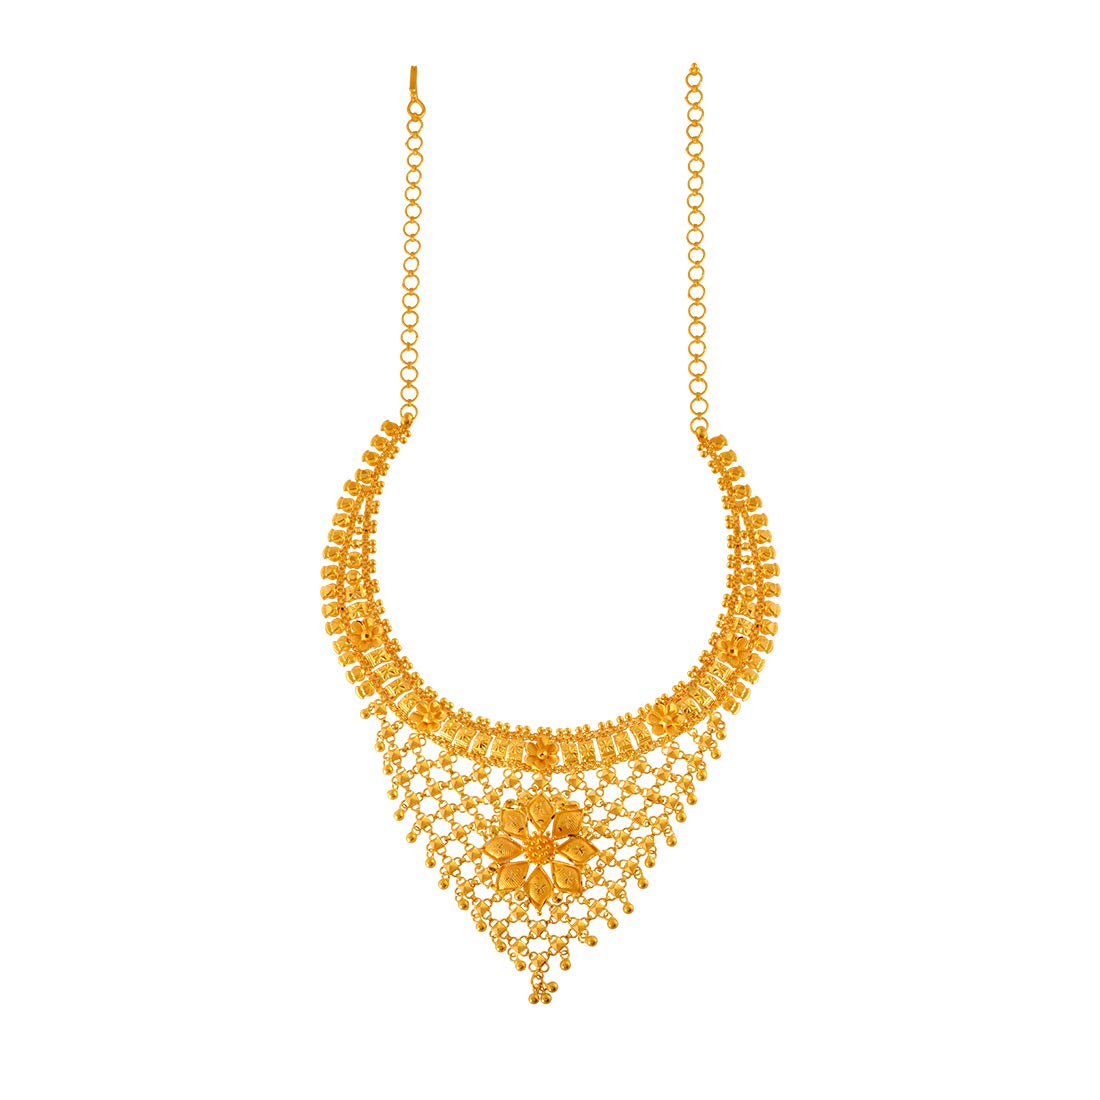 Buy P C Chandra Jewellers 22k 916 Yellow Gold Necklace For Women At Amazon In